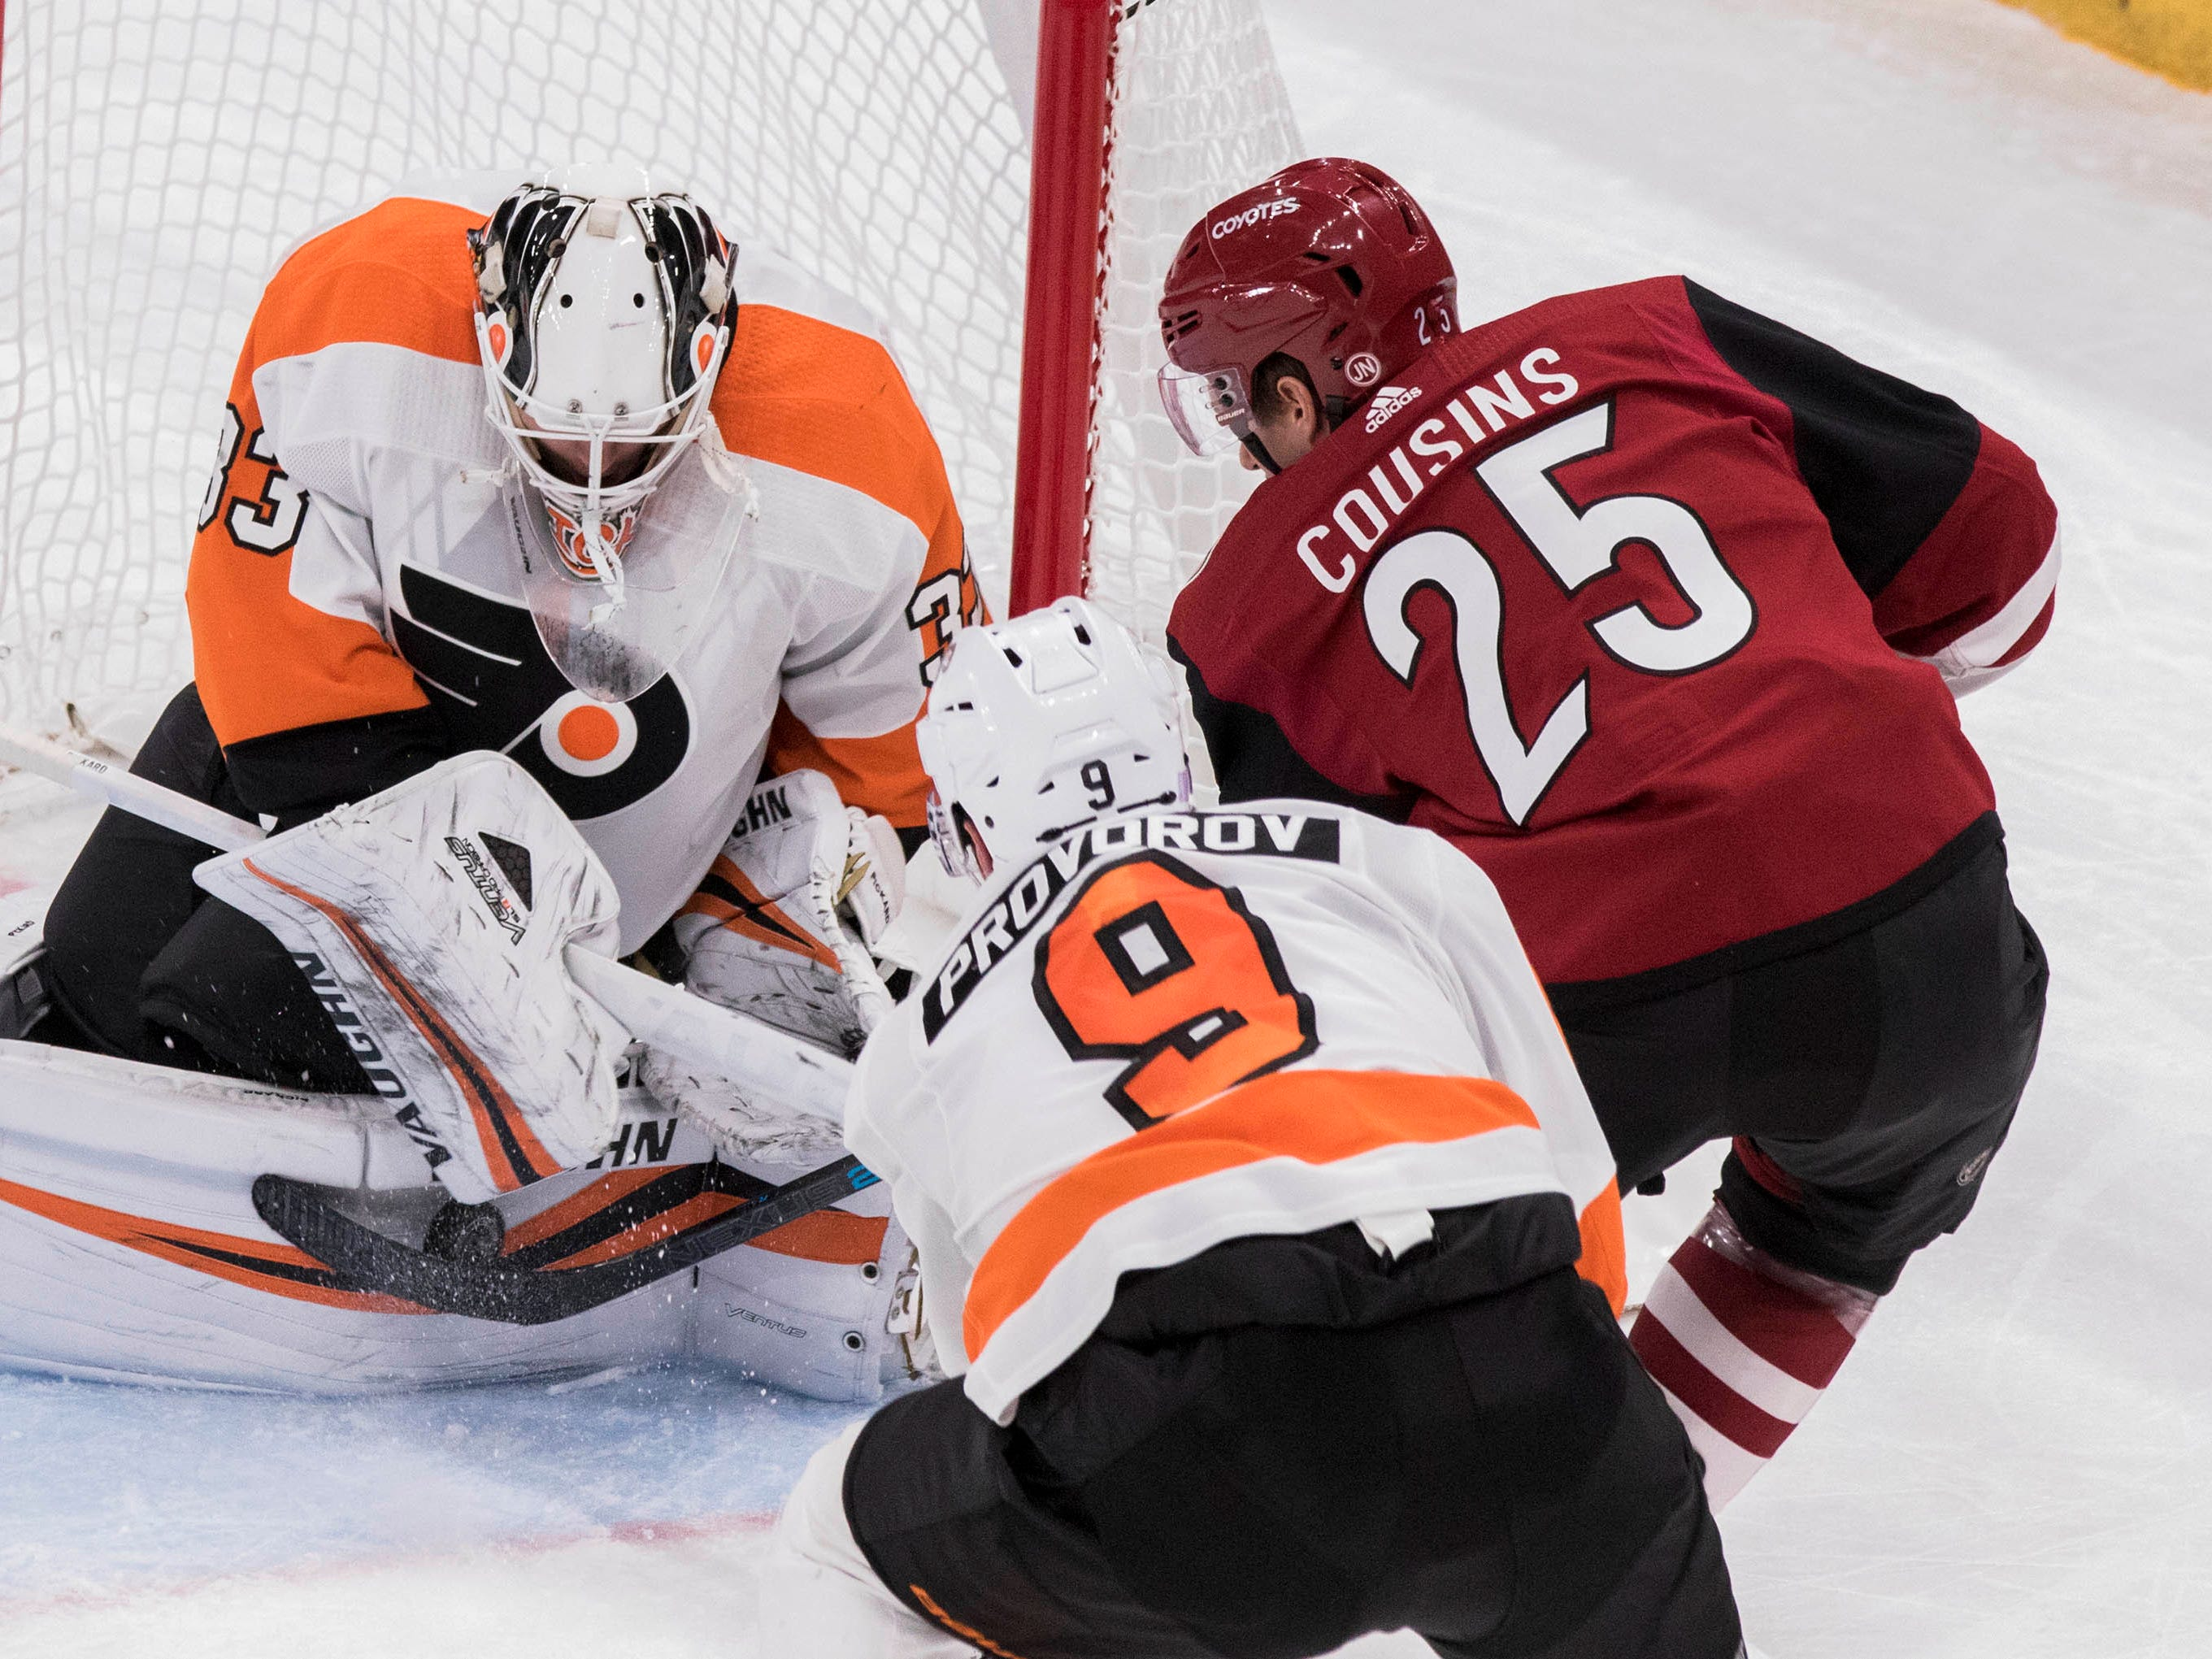 Arizona Coyotes' Nick Cousins (25) puts the puck against the pads of Philadelphia Flyers goalie Calvin Pickard (33) as teammate Ivan Provorov (9) looks on during the third period of an NHL hockey game Monday, Nov. 5, 2018, in Glendale, Ariz. (AP Photo/Darryl Webb)